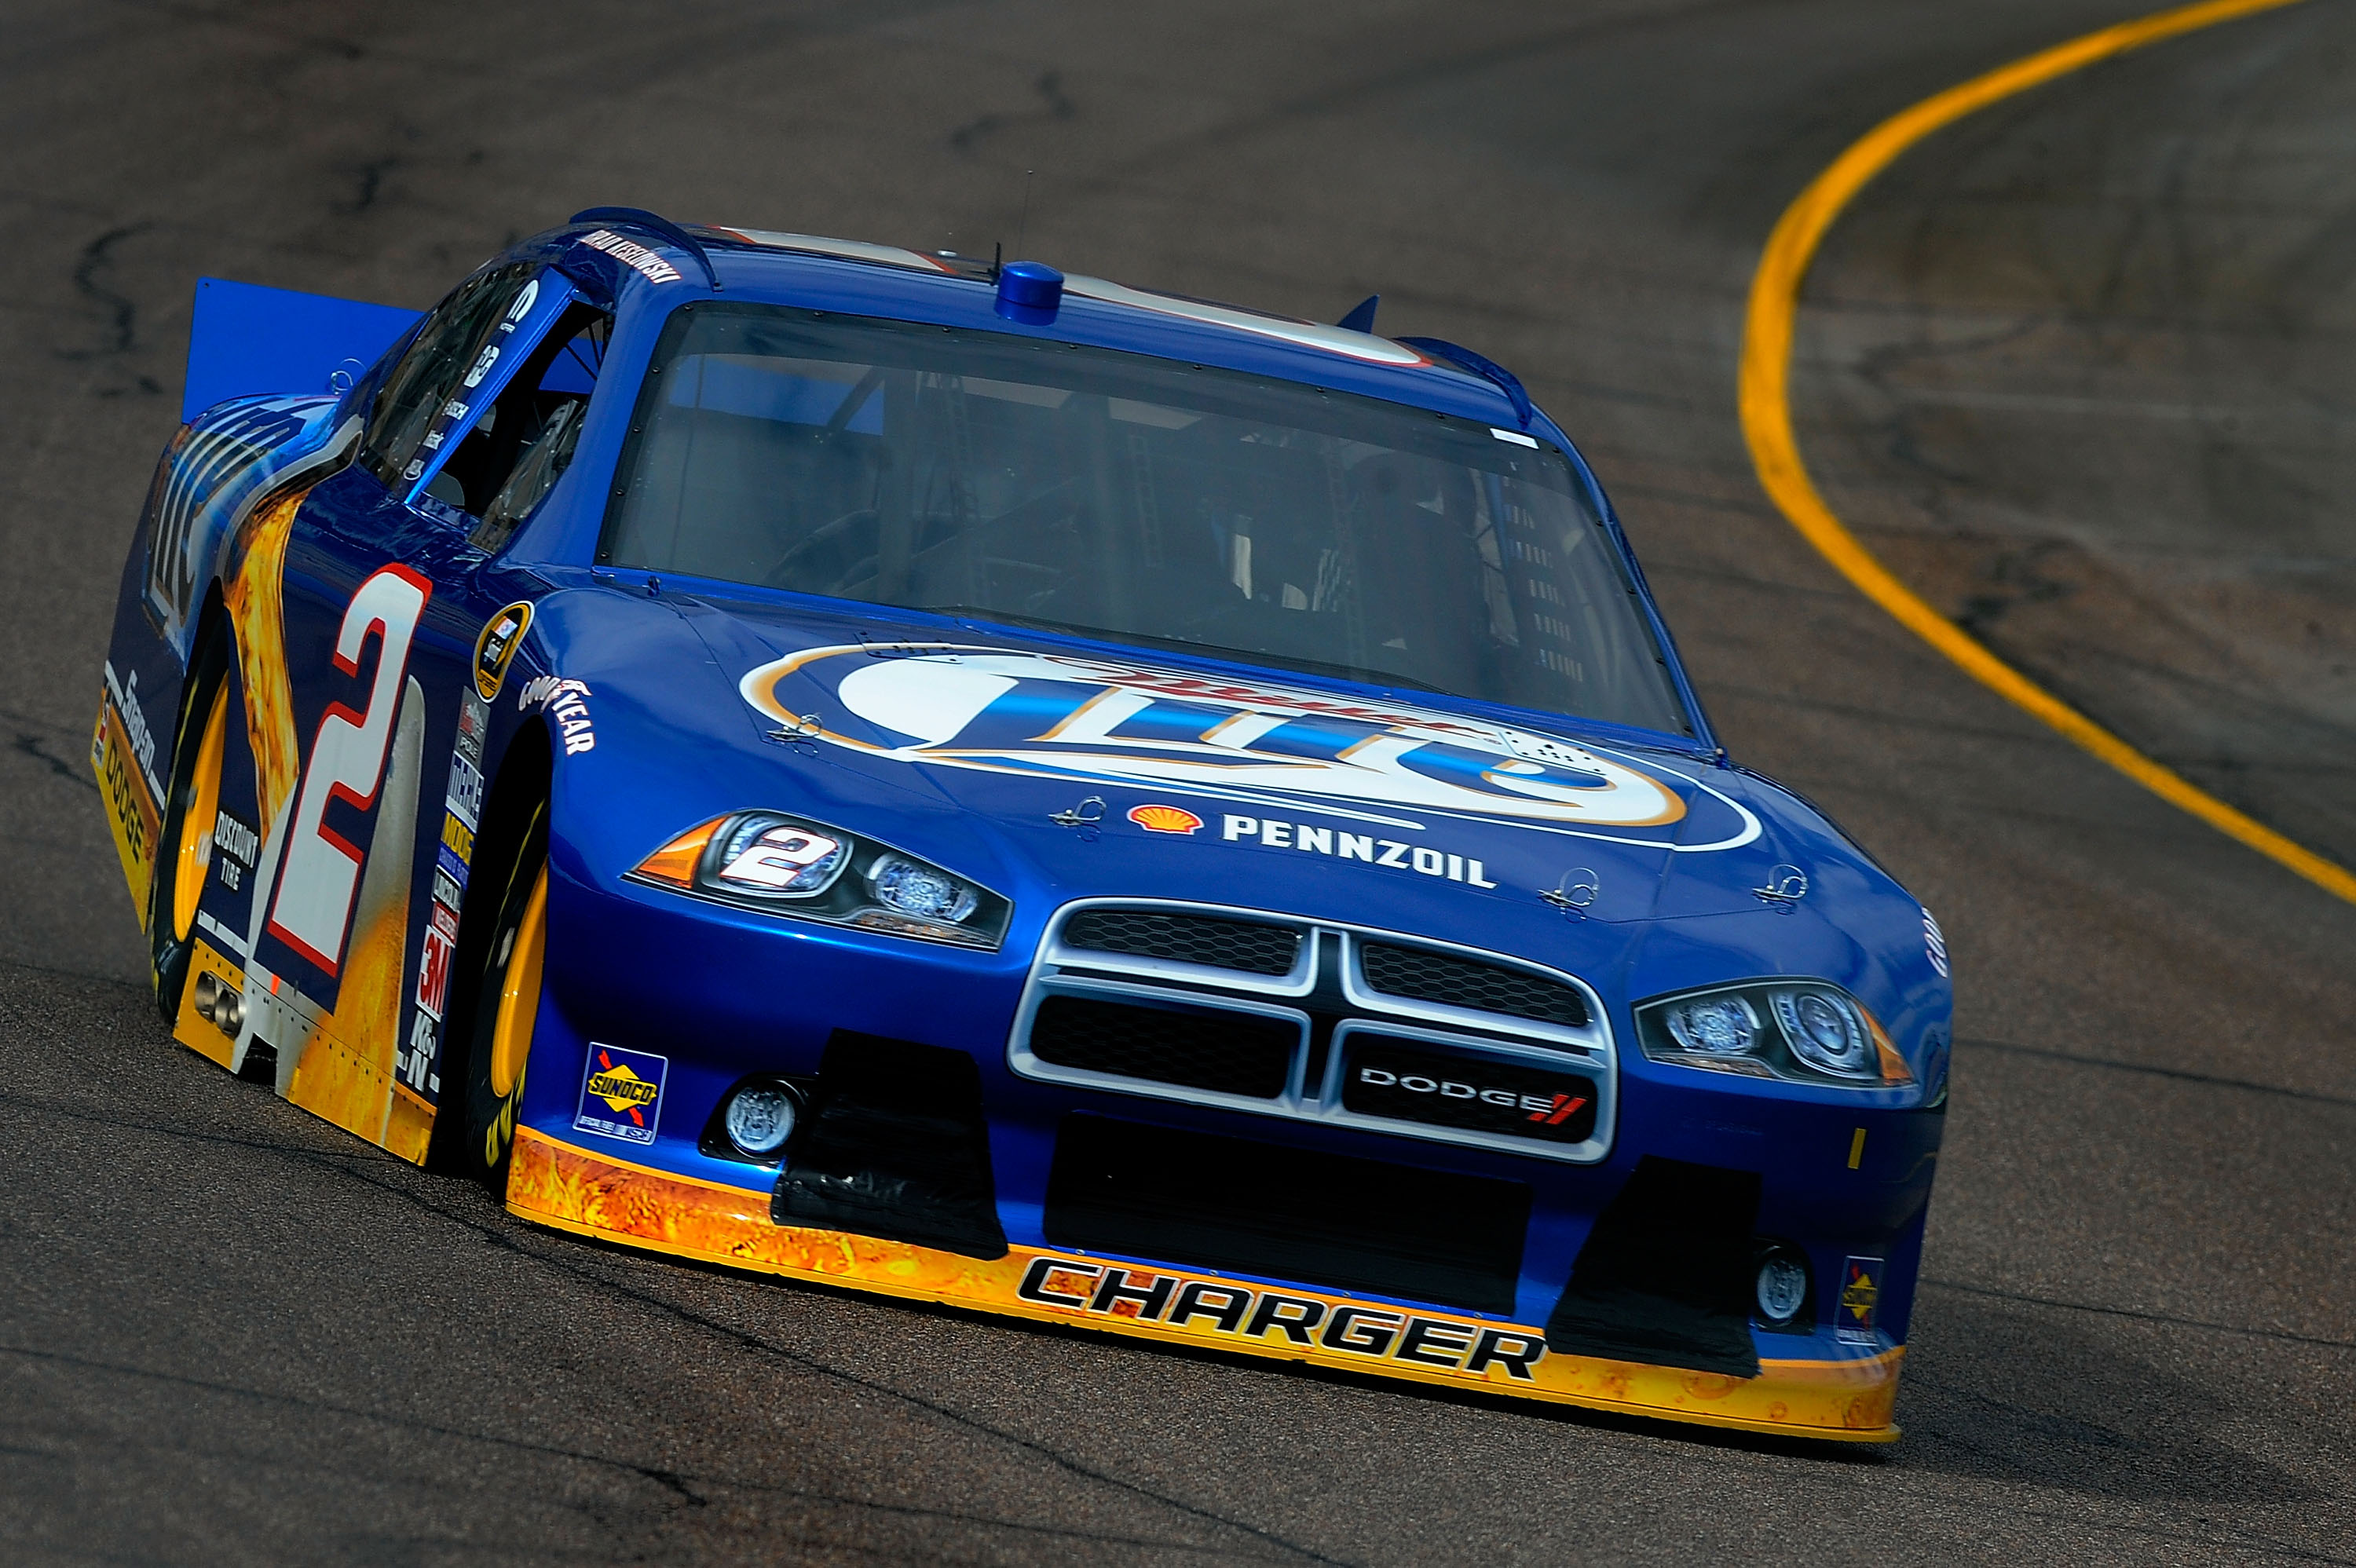 AVONDALE, AZ - FEBRUARY 25:  Brad Keselowski, driver of the #2 Miller Lite Dodge, practices for the Subway Fresh Fit 500 at Phoenix International Raceway on February 25, 2011 in Avondale, Arizona.  (Photo by Jared C. Tilton/Getty Images for NASCAR)